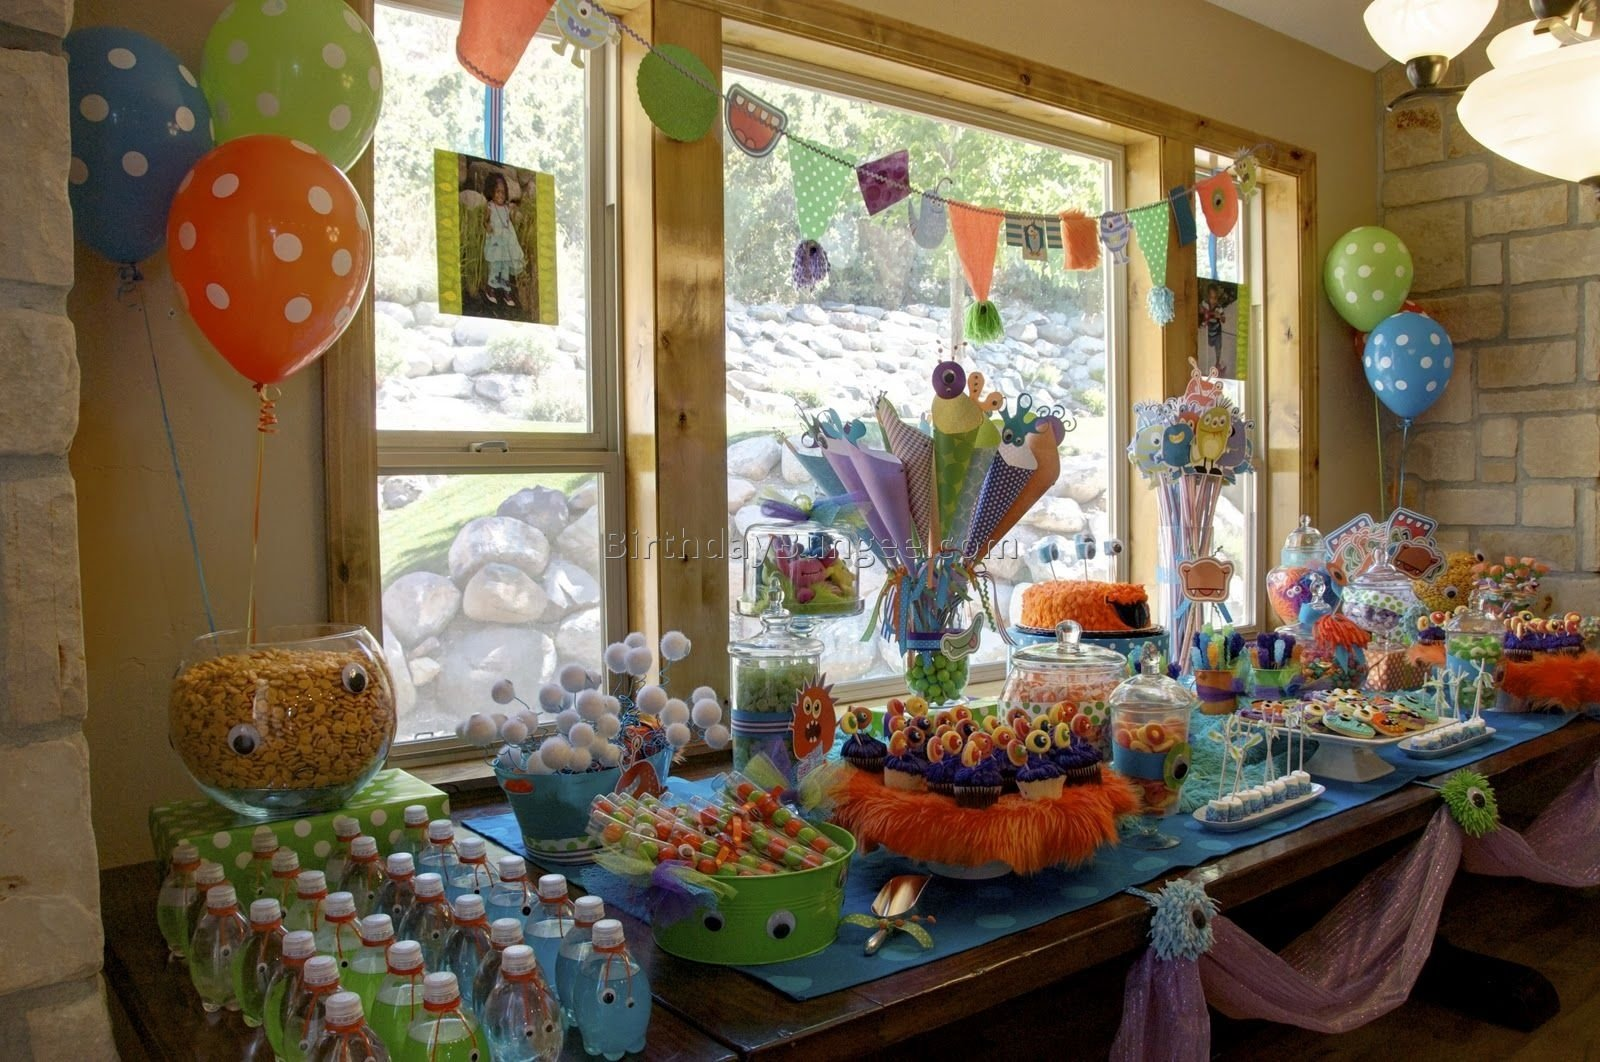 10 Trendy 4 Year Old Birthday Ideas 11 year old birthday party ideas at home home design ideas 3